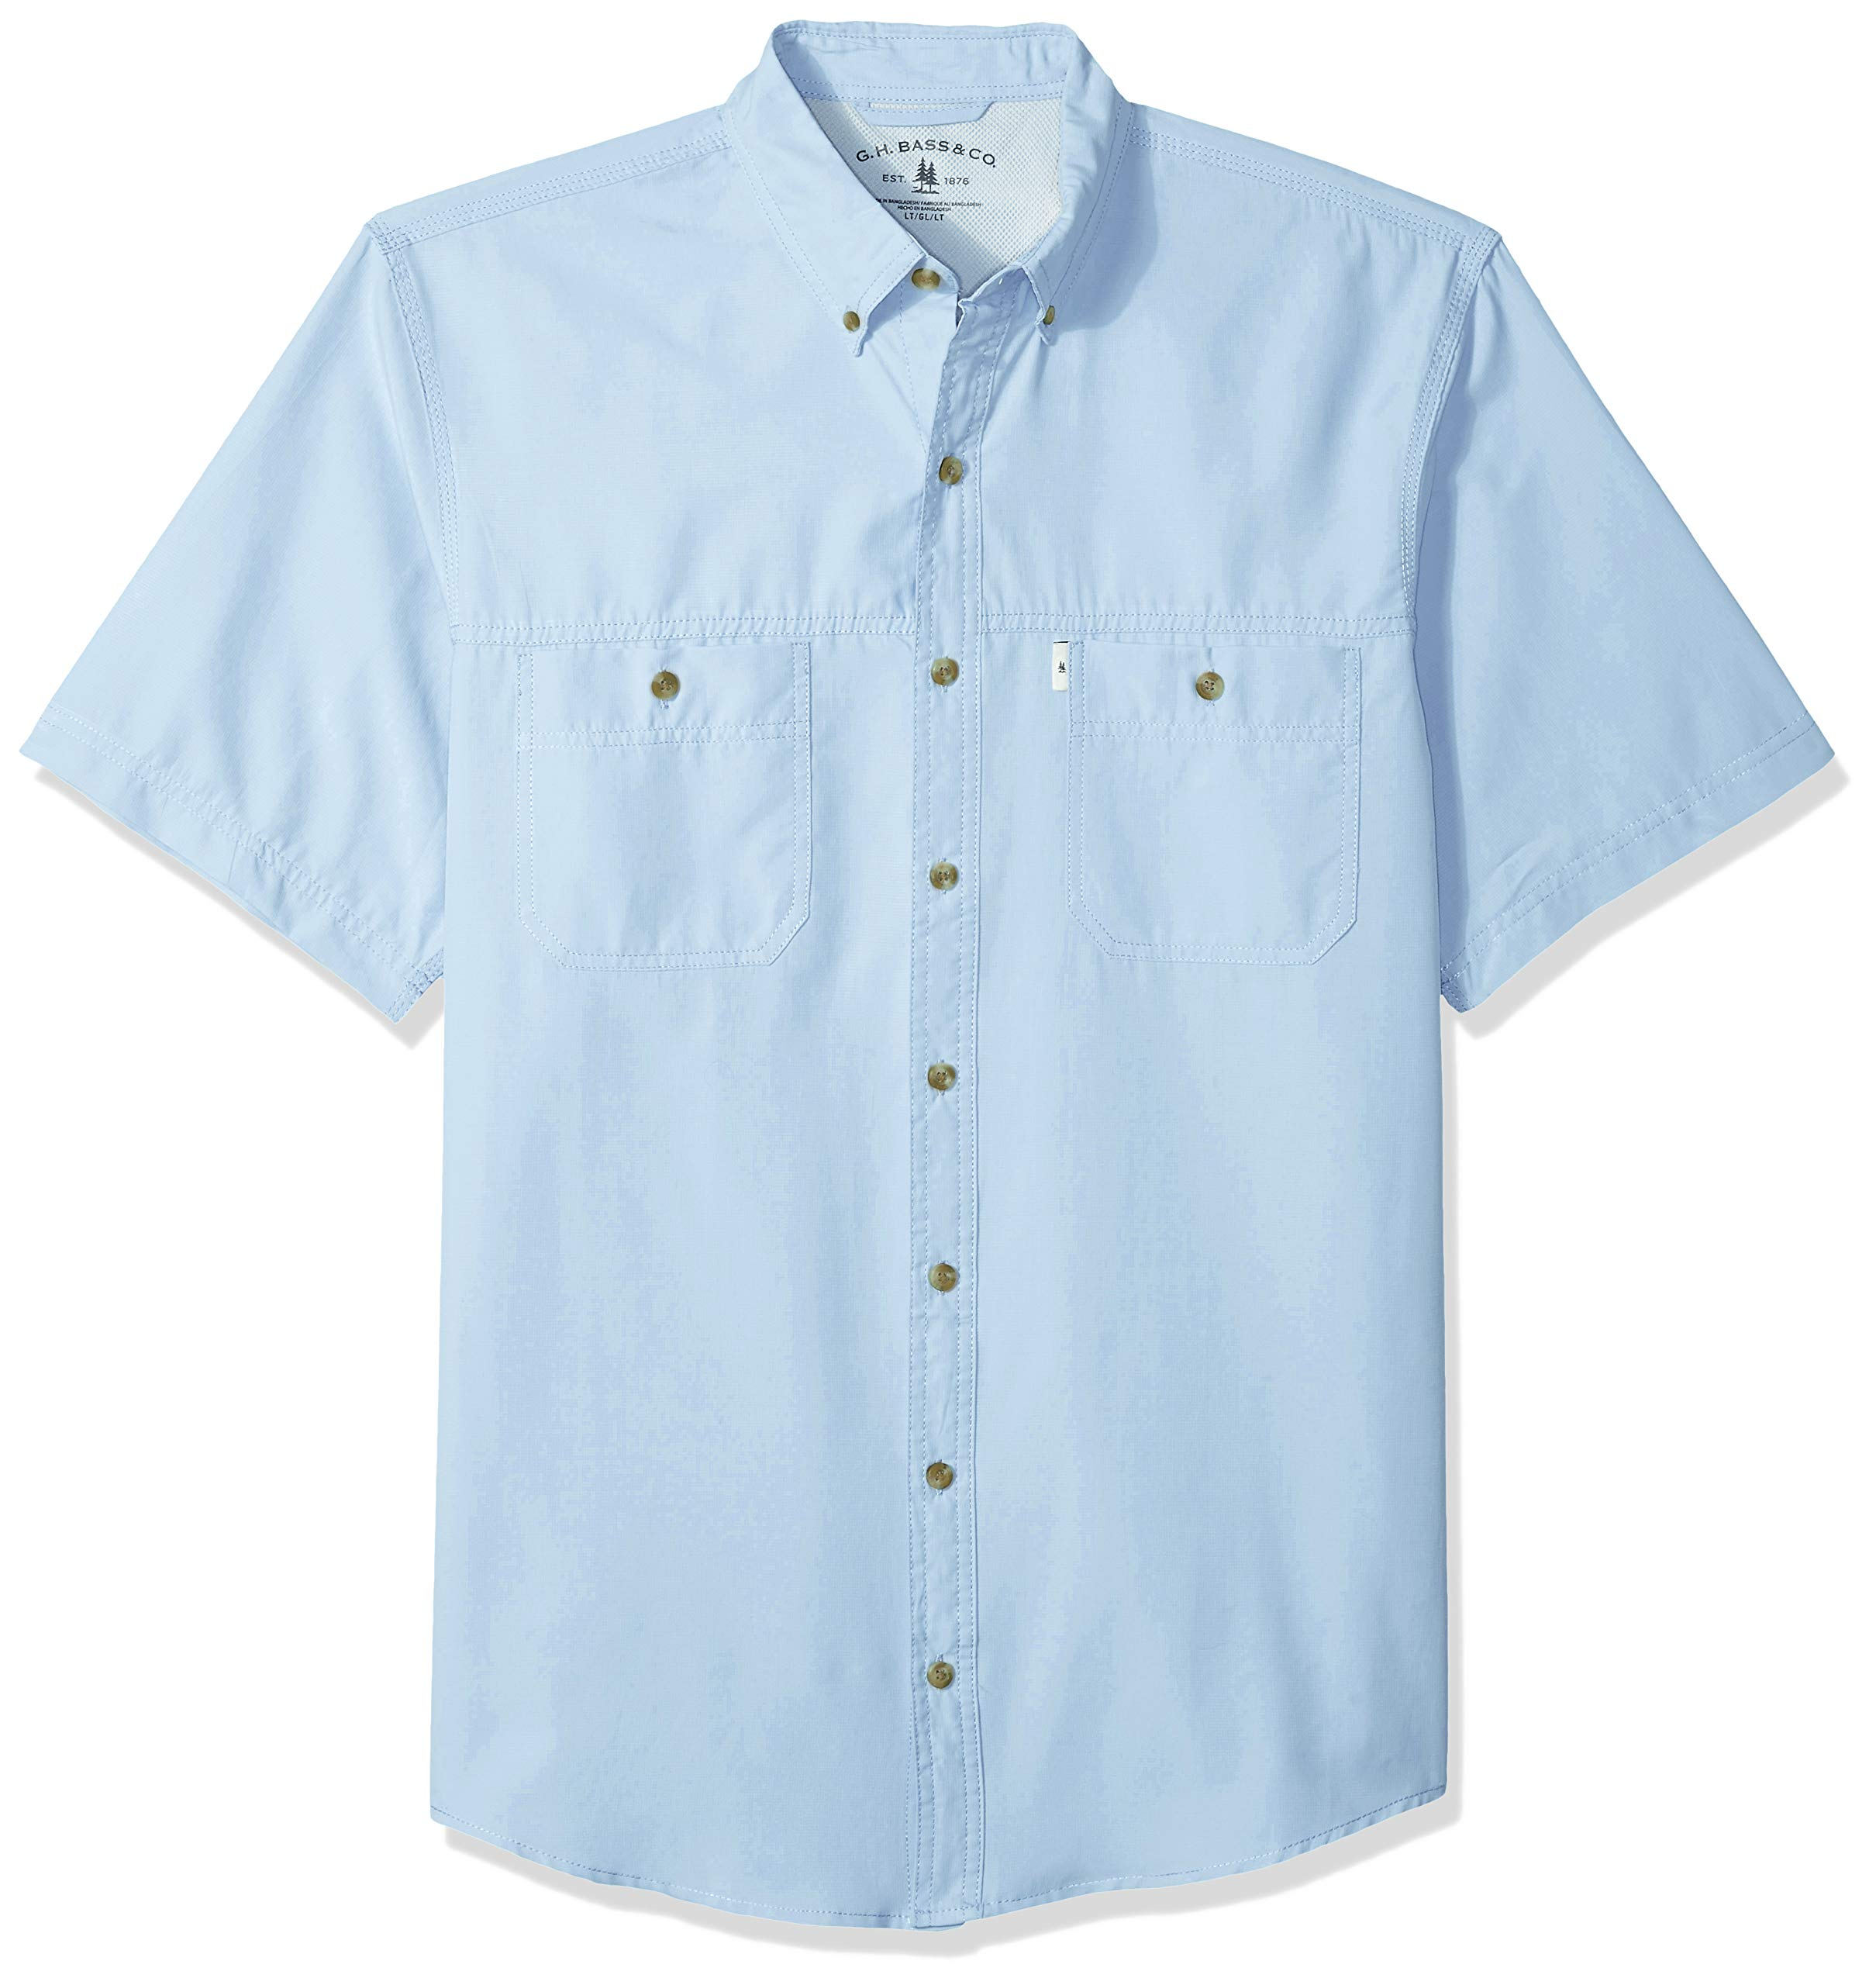 G.H. Bass & Co. Men's Big and Tall Explorer Short Sleeve Fishing Shirt Solid Button Pocket